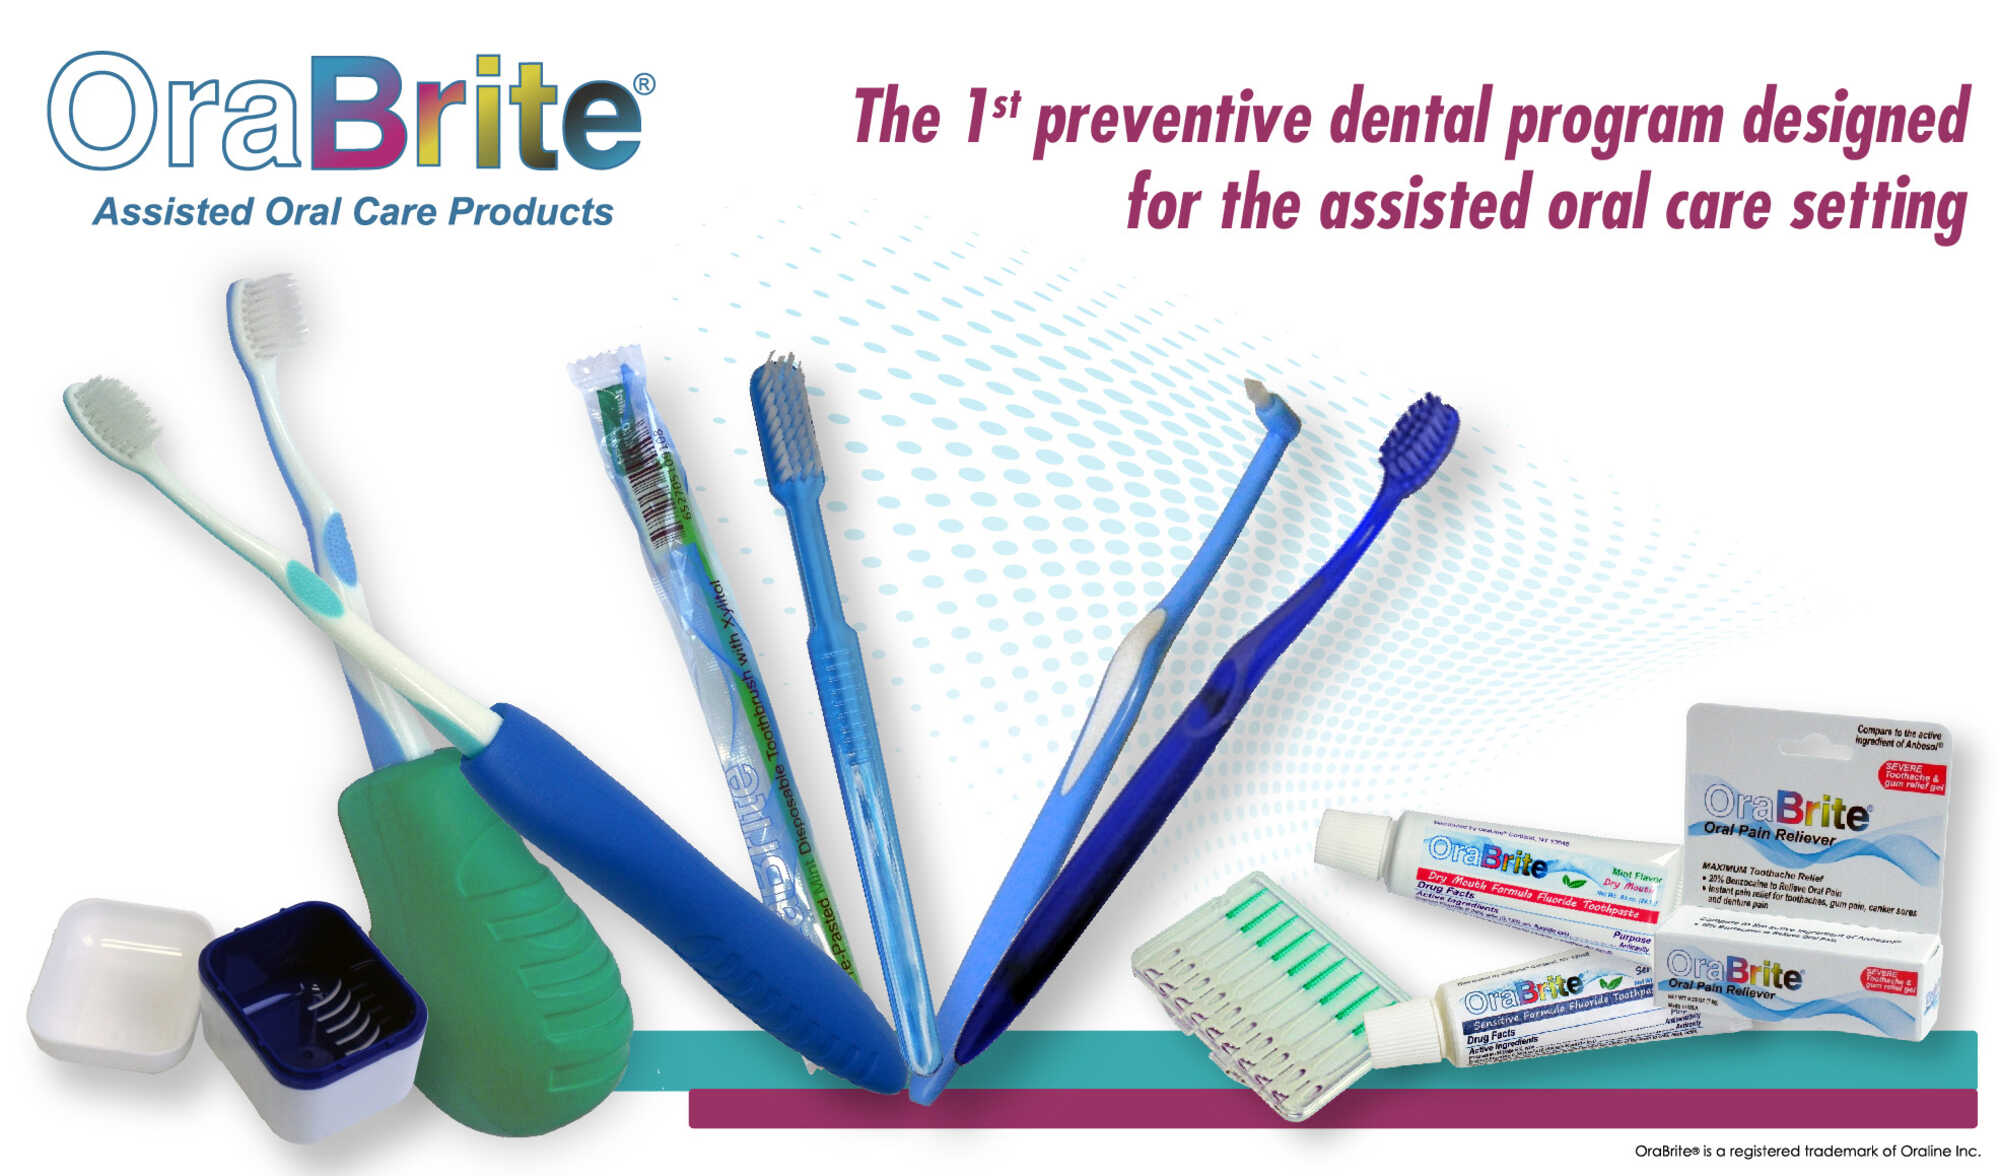 OraBrite Assisted Oral Care Products